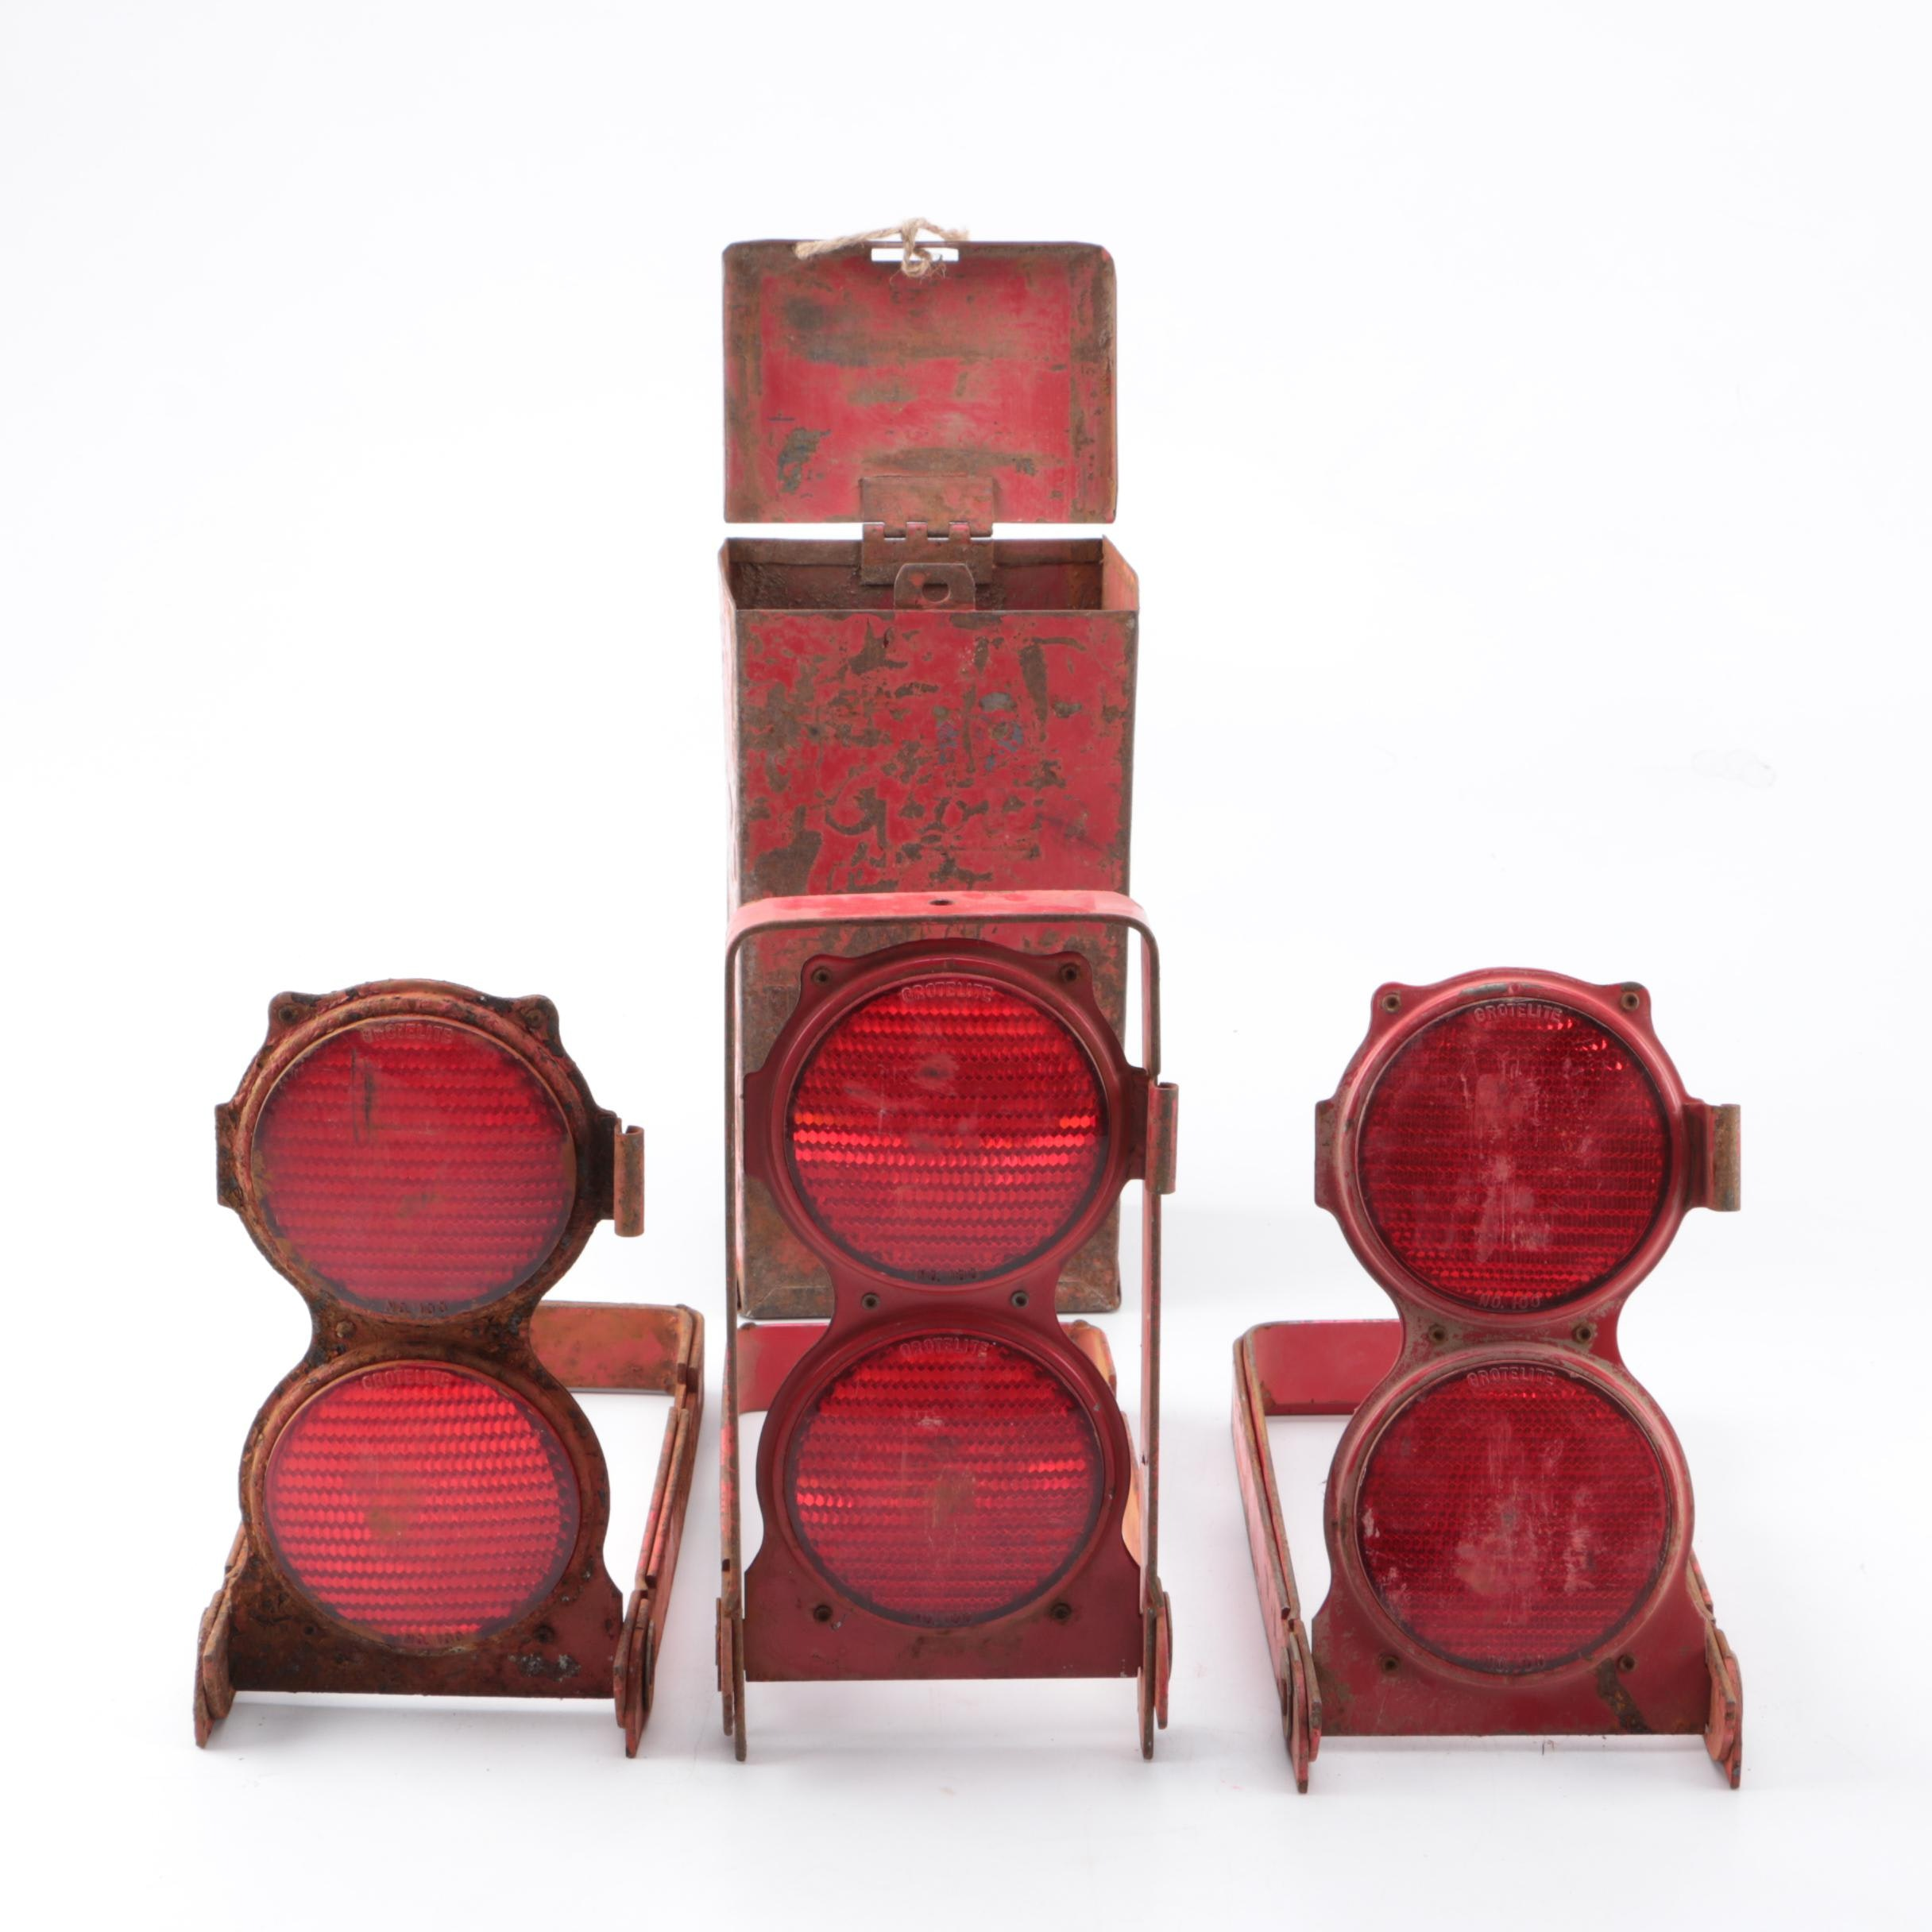 Vintage Red Hazard Reflectors